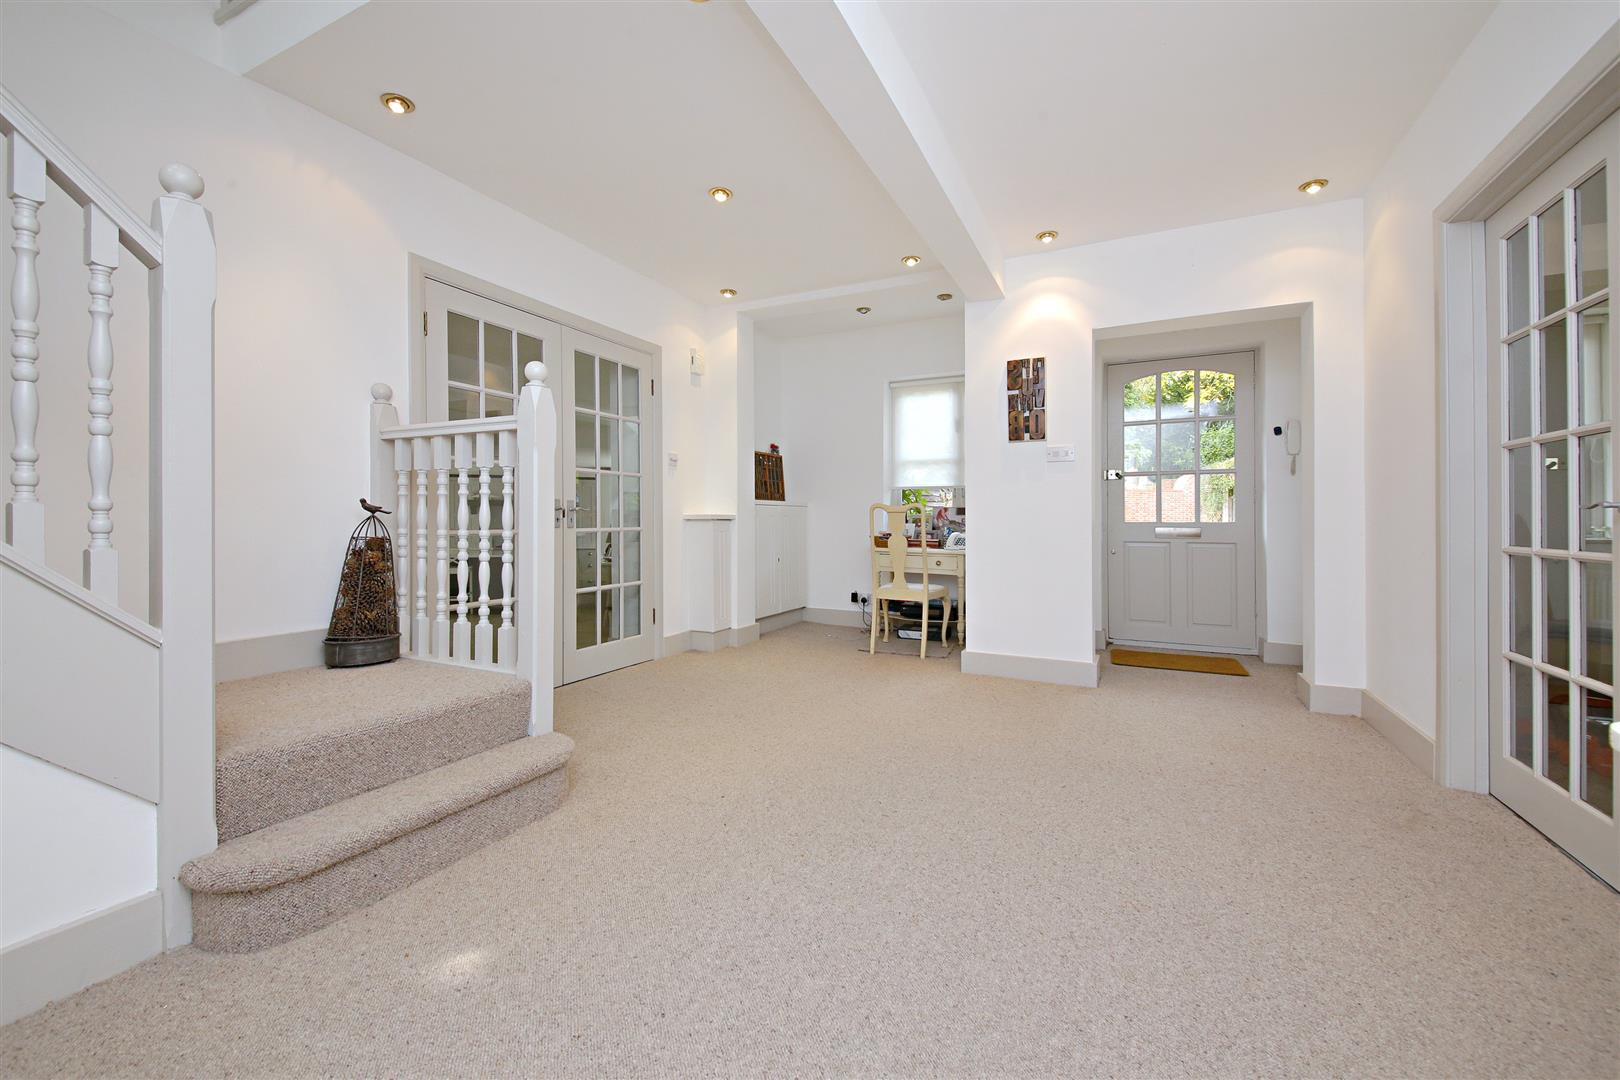 5 bed to rent in Letchmore Heath - (Property Image 4)